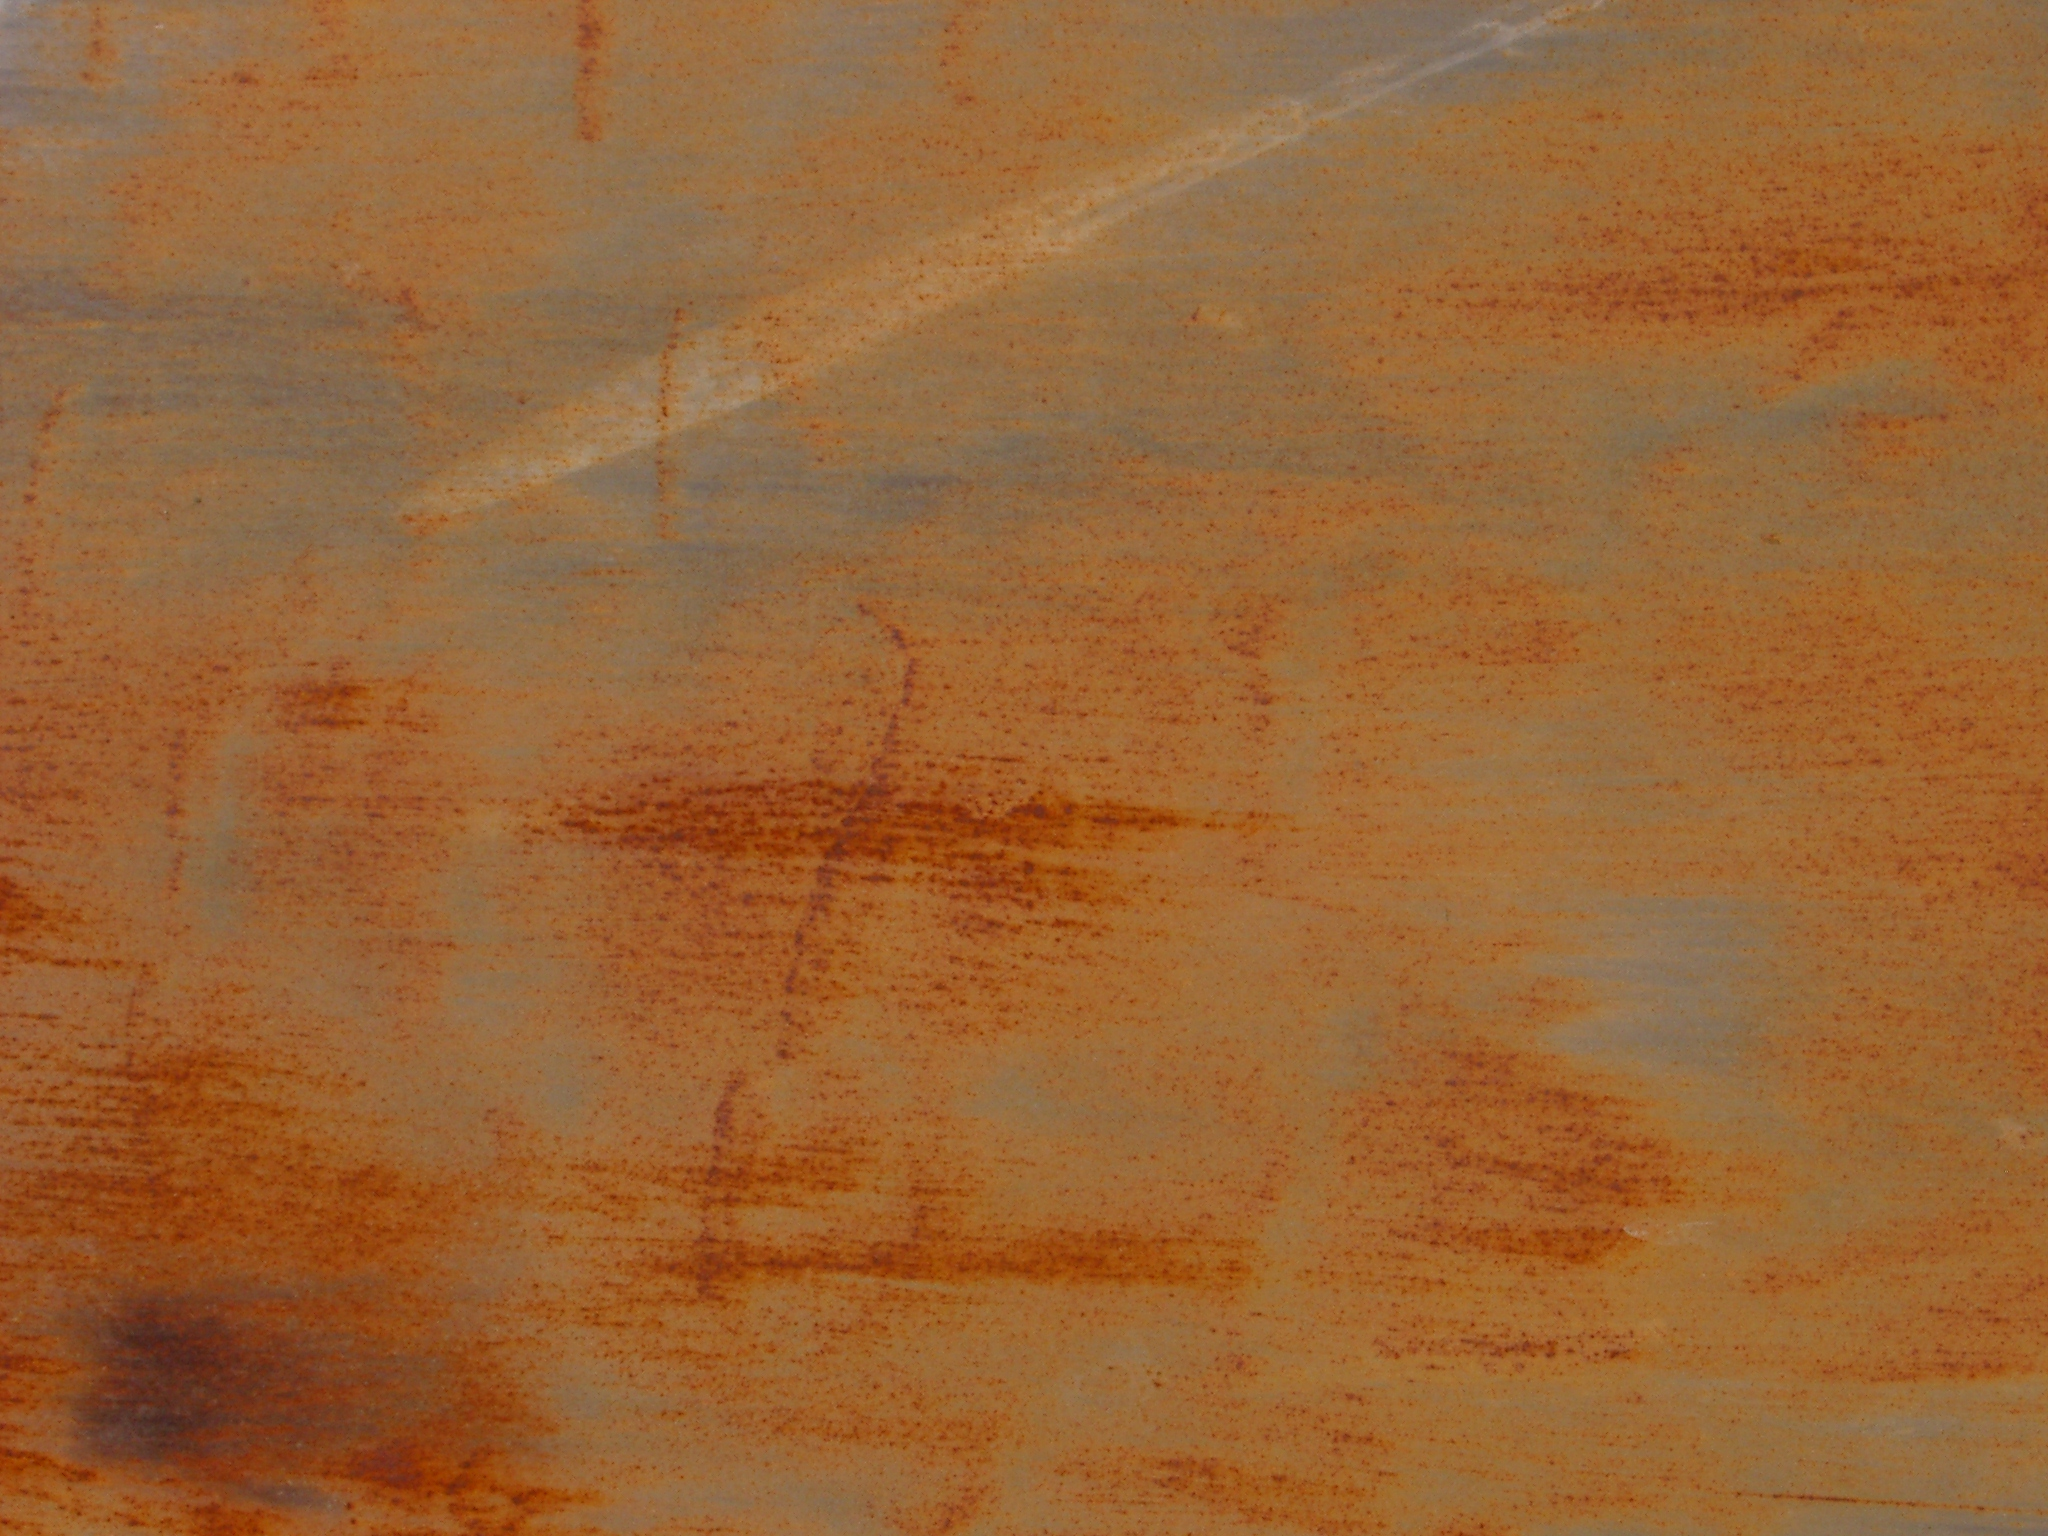 Free Stock Photo 181 Rusty Scratches 4428 Jpg Freeimageslive